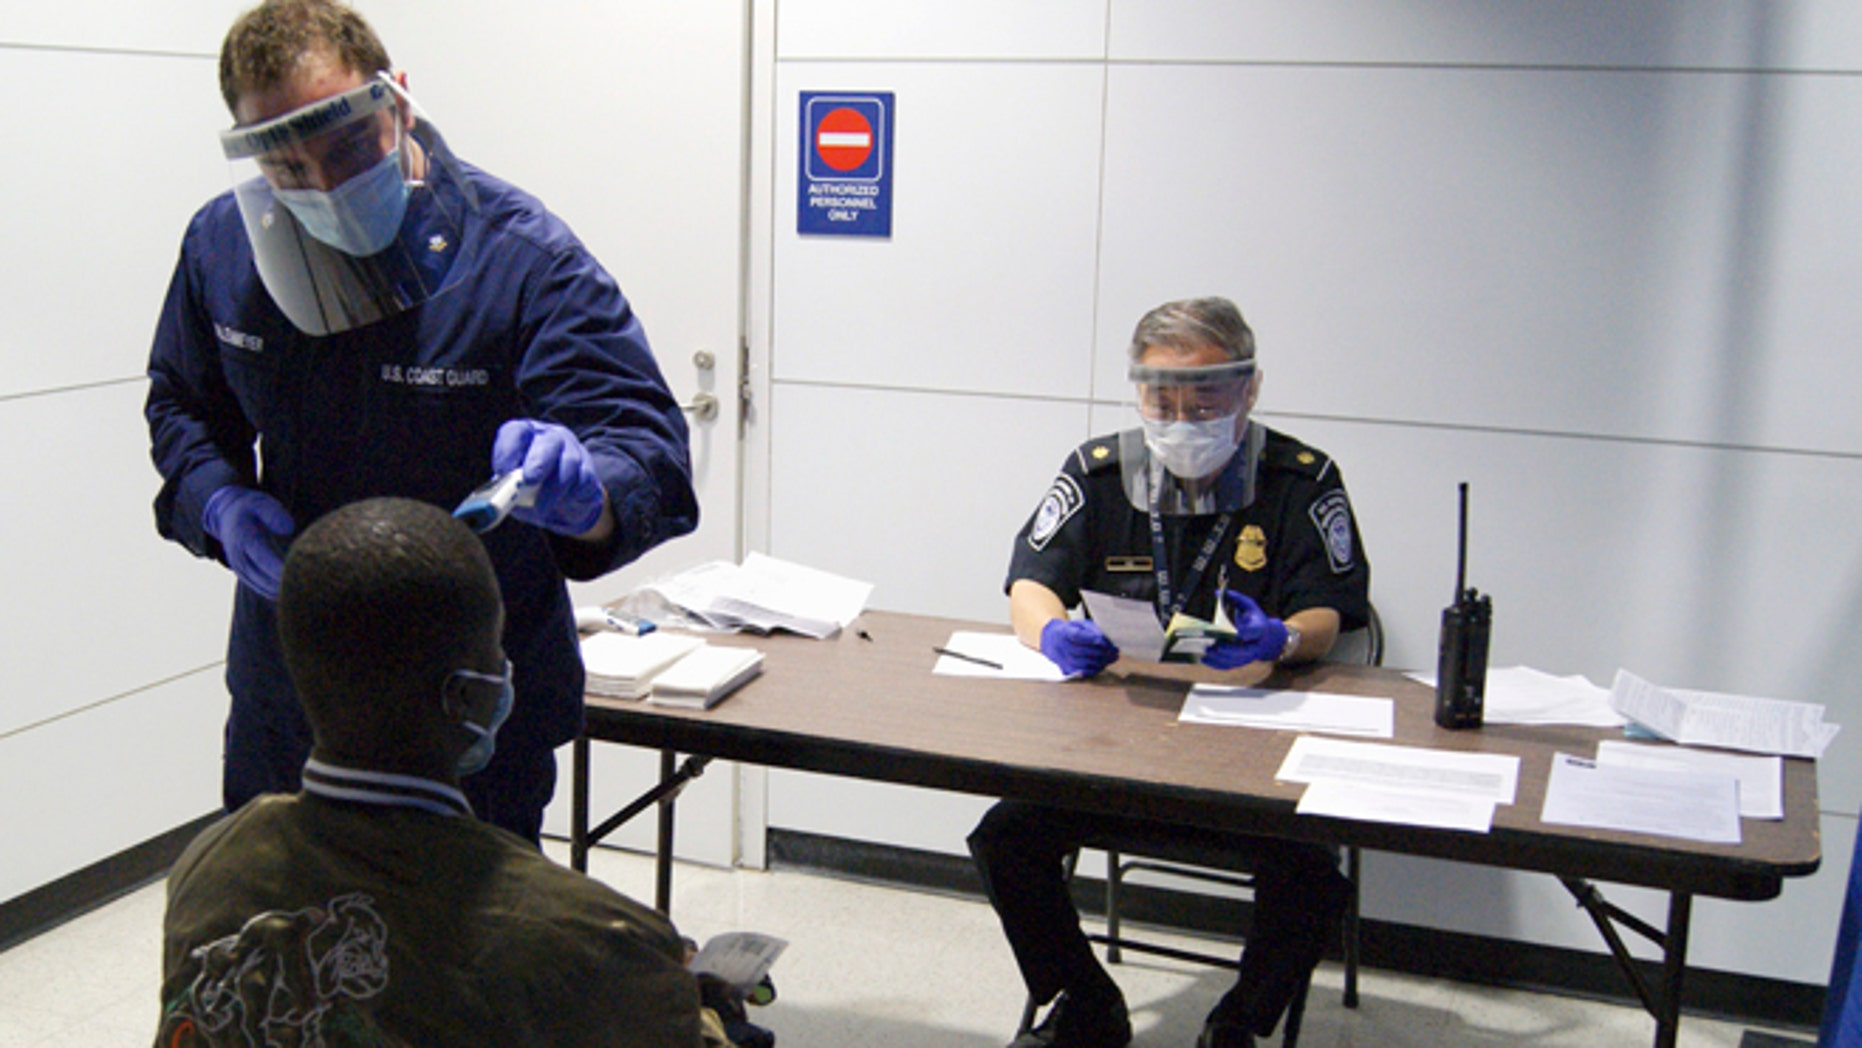 FILE- In this Thursday, Oct. 16, 2014, file photo released by U.S. Customs and Border Protection, U.S. Coast Guard Health Technician Nathan Wallenmeyer, left, and CBP supervisor Sam Ko, right, conduct prescreening measures on a passenger who has arrived from Sierra Leone at O'Hare International Airport's Terminal 5 in Chicago. Demands are rising in Washington for the U.S. to ban travelers from countries in West Africa, but the Obama administration is resisting and says the screening measures already in place for travelers are more effective. (AP Photo/U.S. Customs and Border Protection, Melissa Maraj, File)